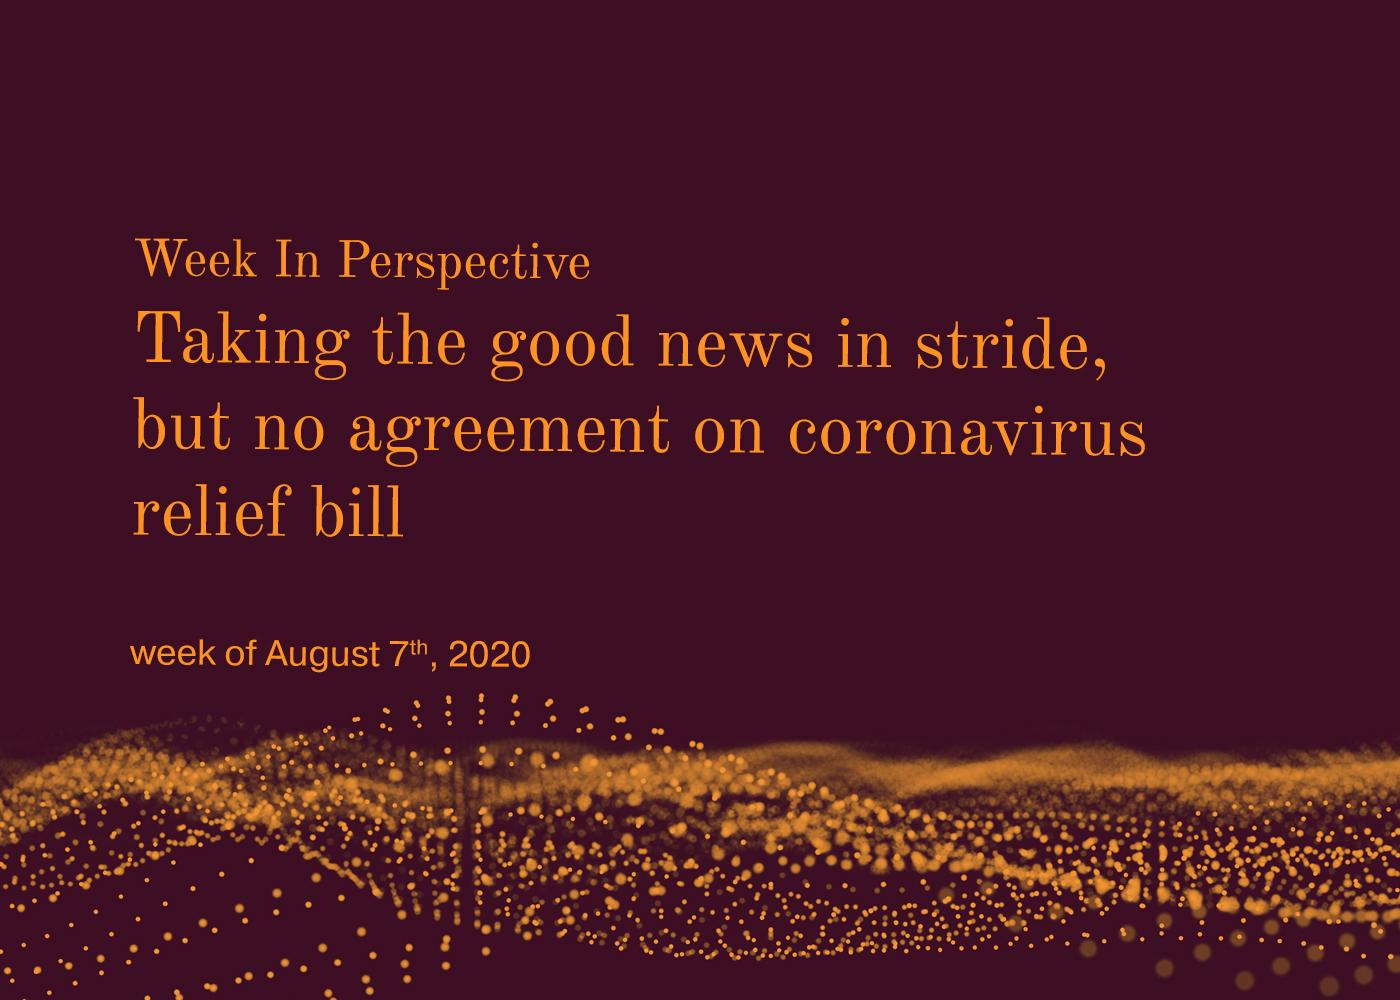 Week in Perspective August 7, 2020: Taking the Good News in Stride, While awaiting Agreement on the next Covid Relief Bill Thumbnail